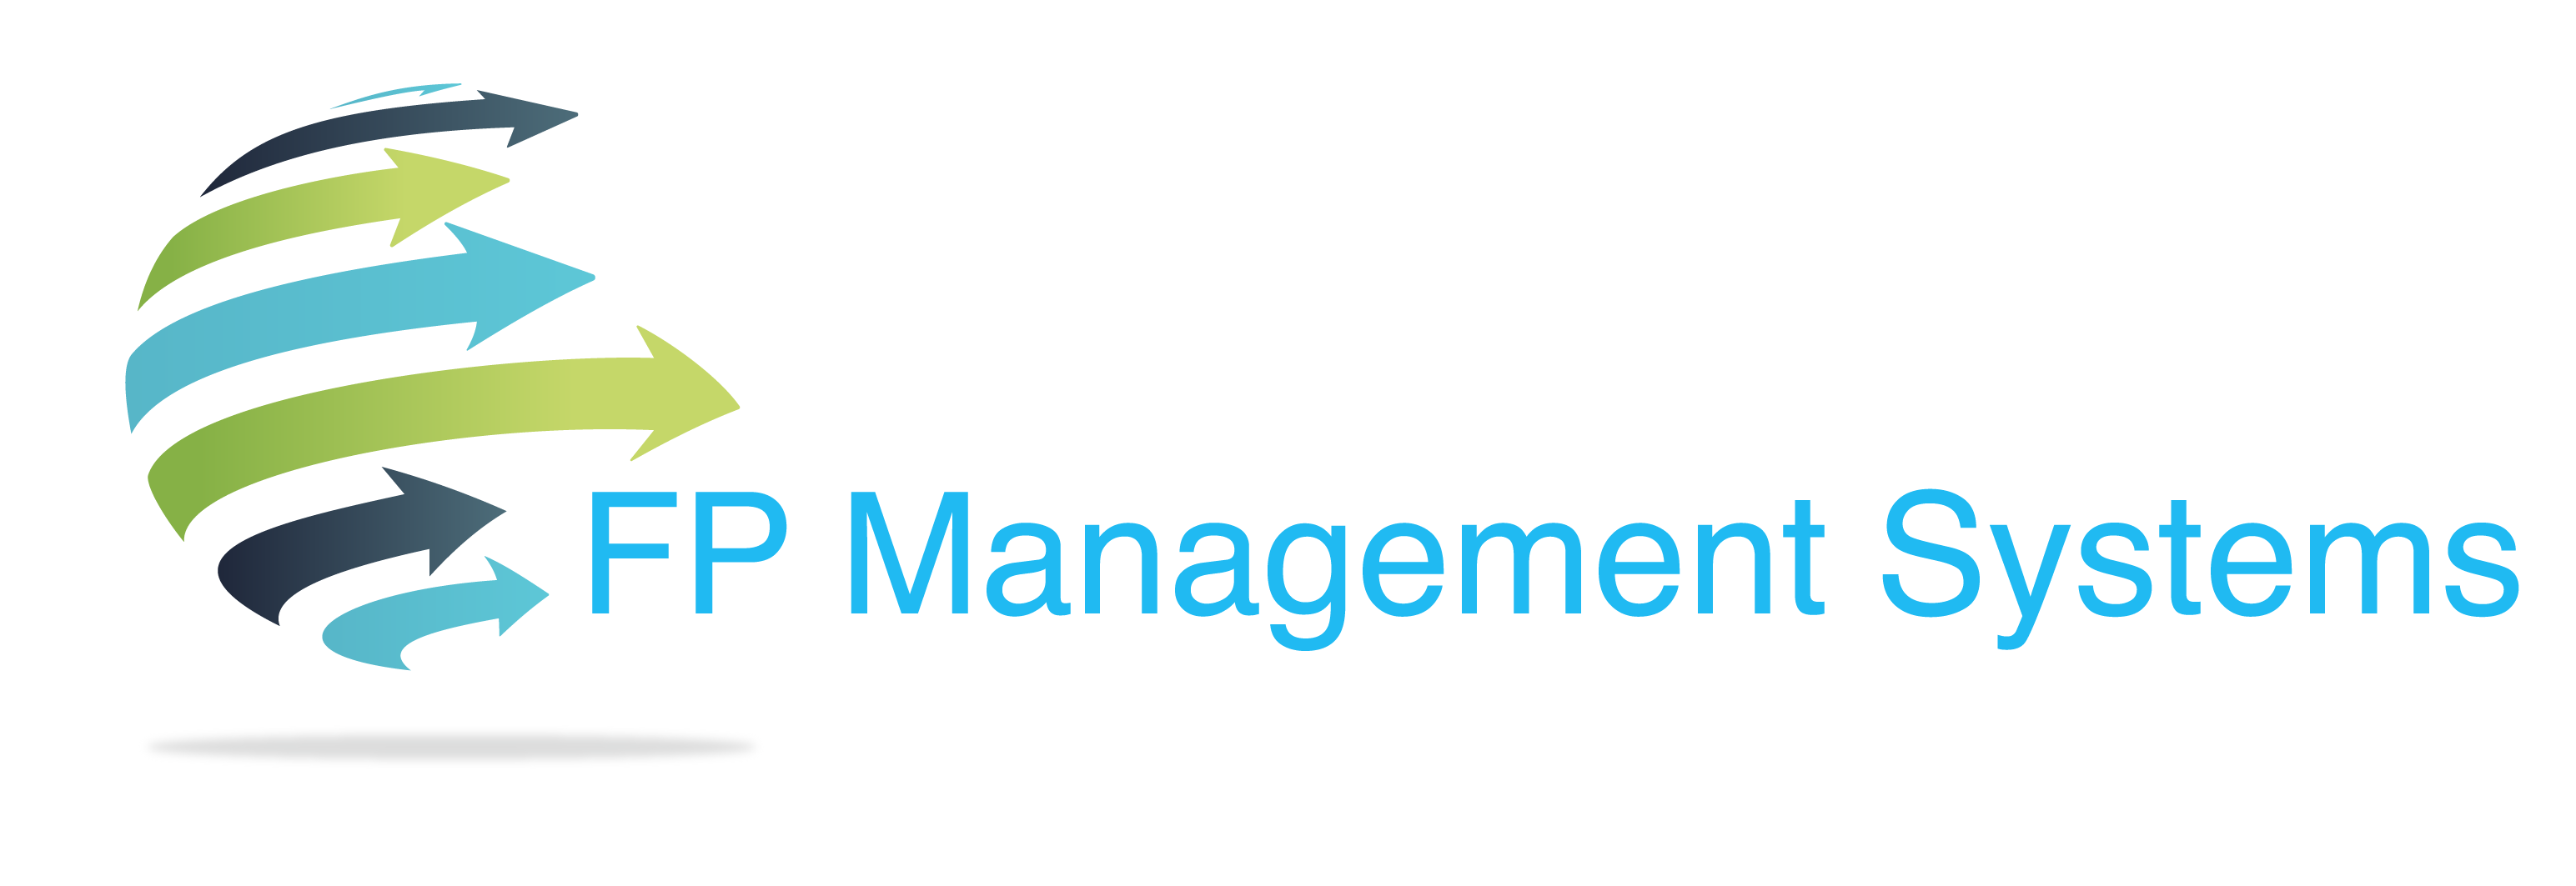 FP Management Systems